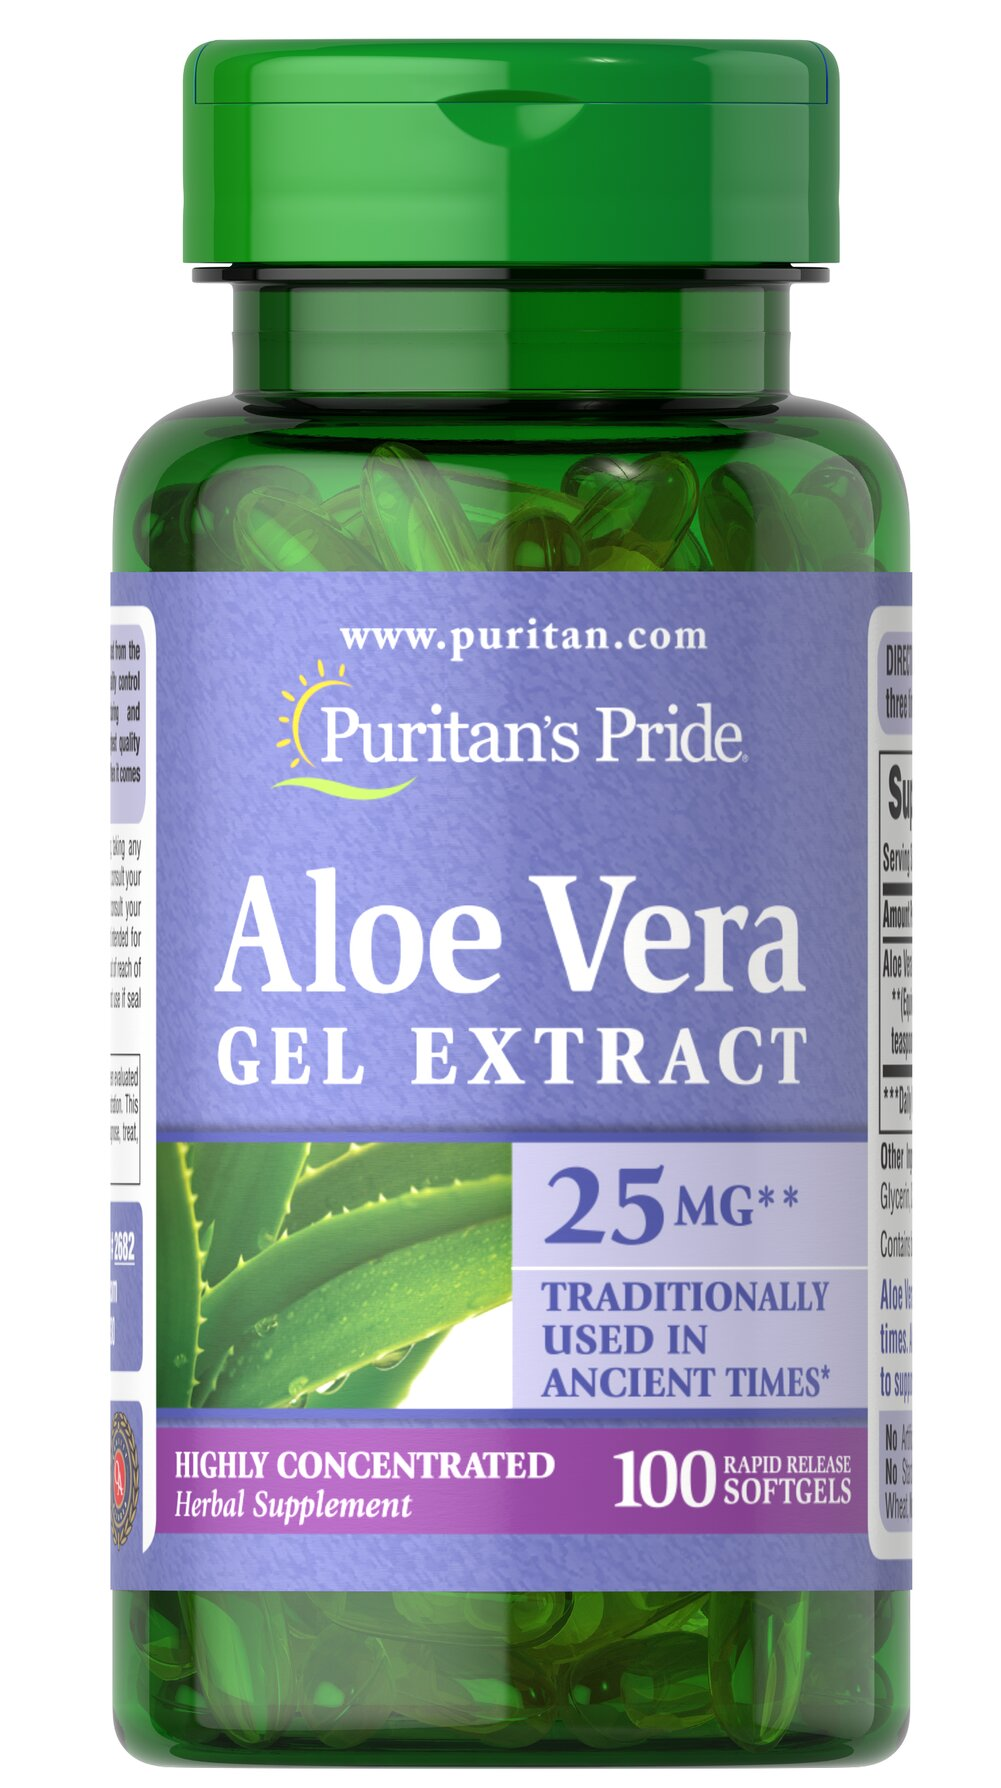 Aloe Vera Extract 25 mg <p>Serves as an aid for healthy digestion**</p><p>Plays a role in the well-being of the body**</p><p>Convenience of capsules, softgels and liquids is unsurpassed</p><p>Has been used and trusted for centuries. **</p><p>Aloe Vera contains a vast array of vitamins, minerals, amino acids, polysaccharides and phenolic compounds, and has been shown to support a healthy digestive system.**</p> 100 Softgels 25 mg $9.99